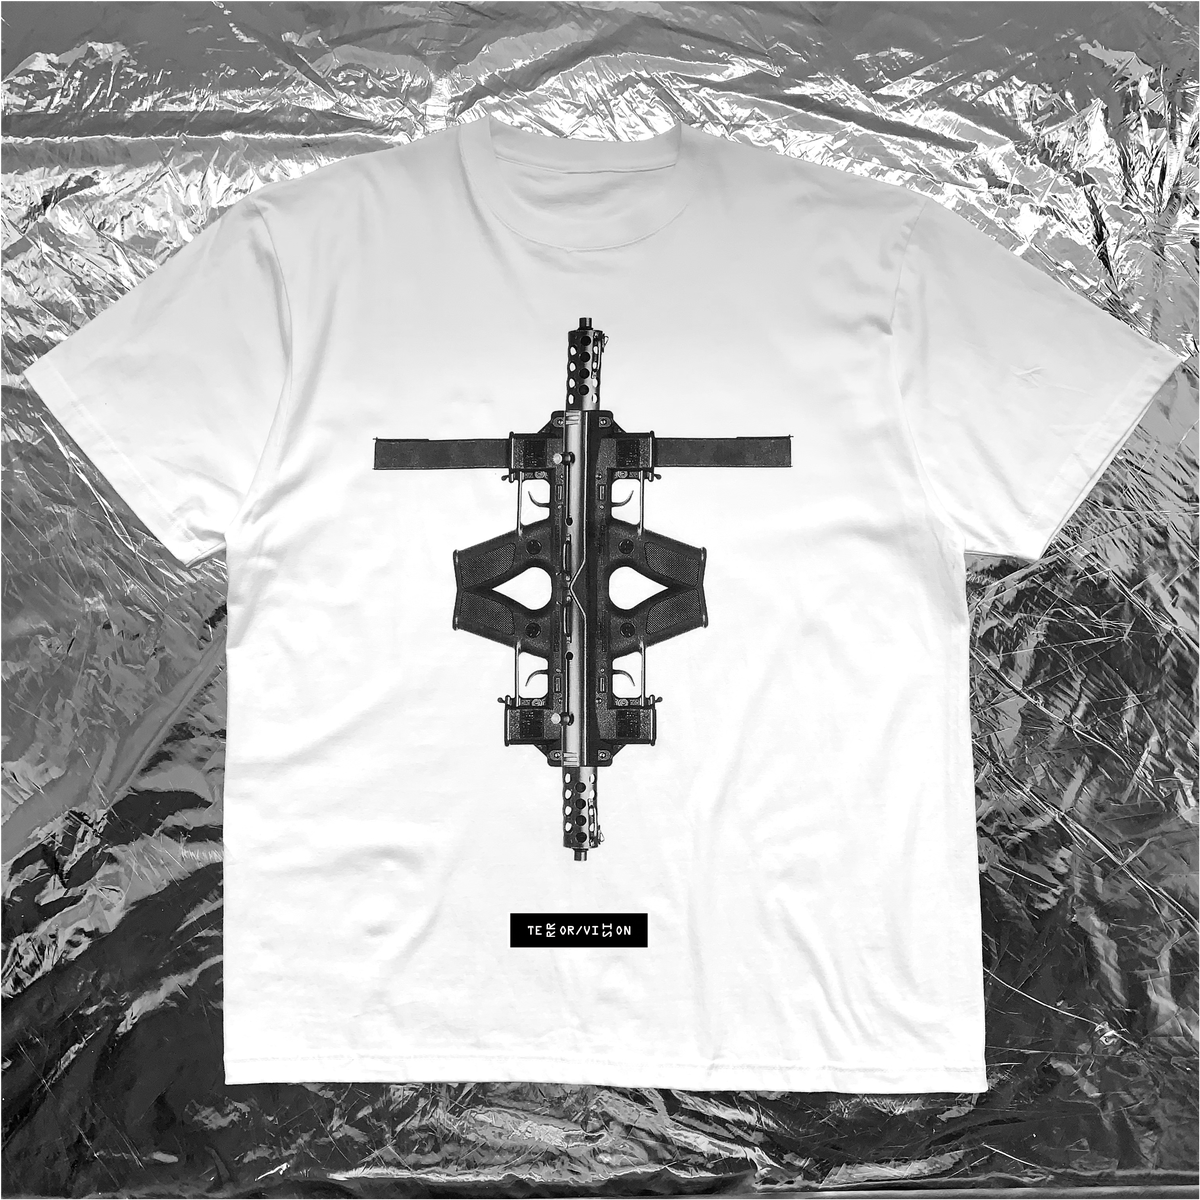 Image of TERROR VISION - Tech9 Cross tee (with 3M reflective embroidery logo patch)